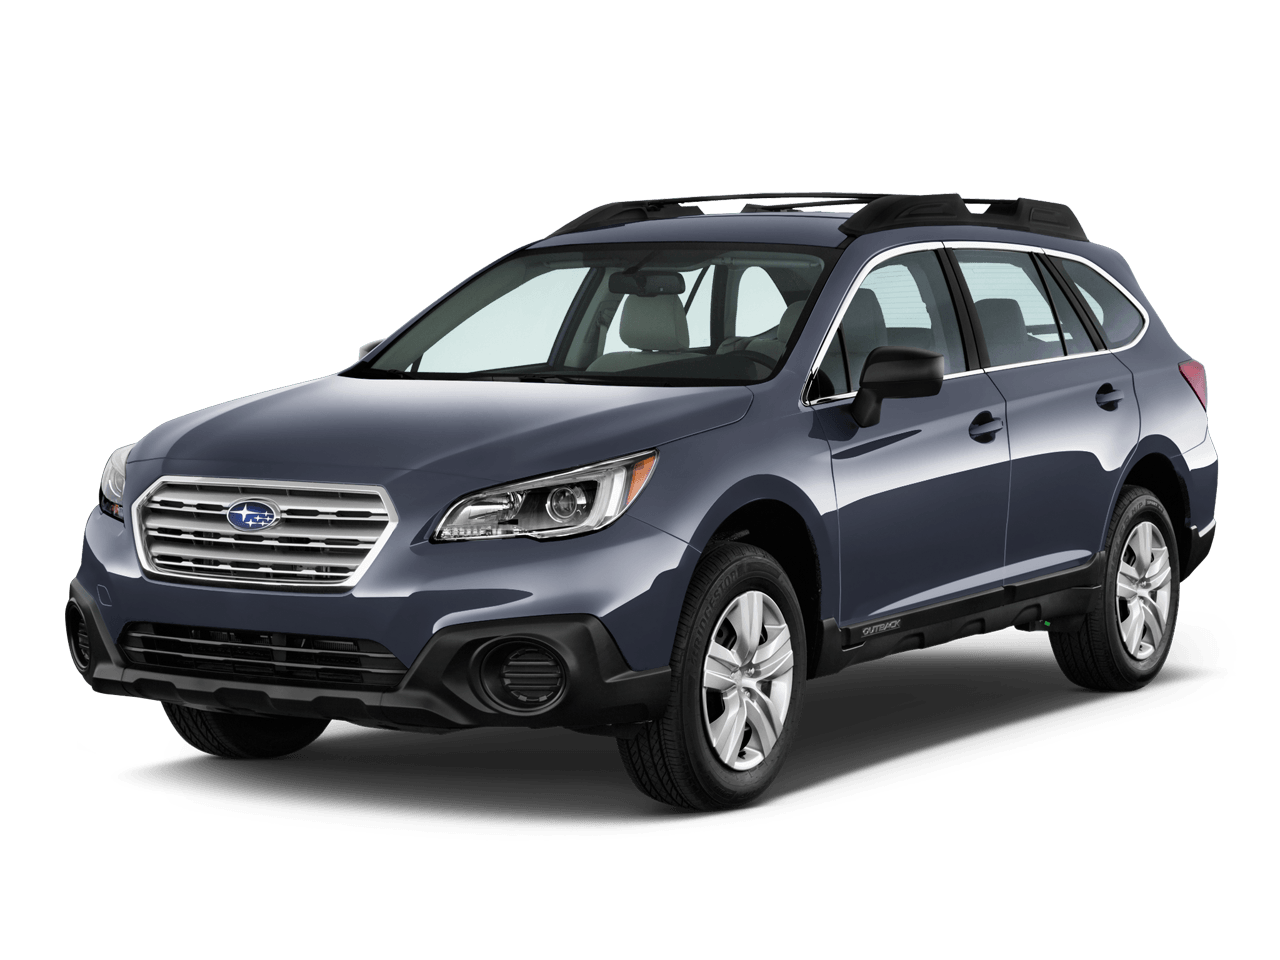 2017 subaru outback lease offers and best prices near boston quirk works subaru. Black Bedroom Furniture Sets. Home Design Ideas